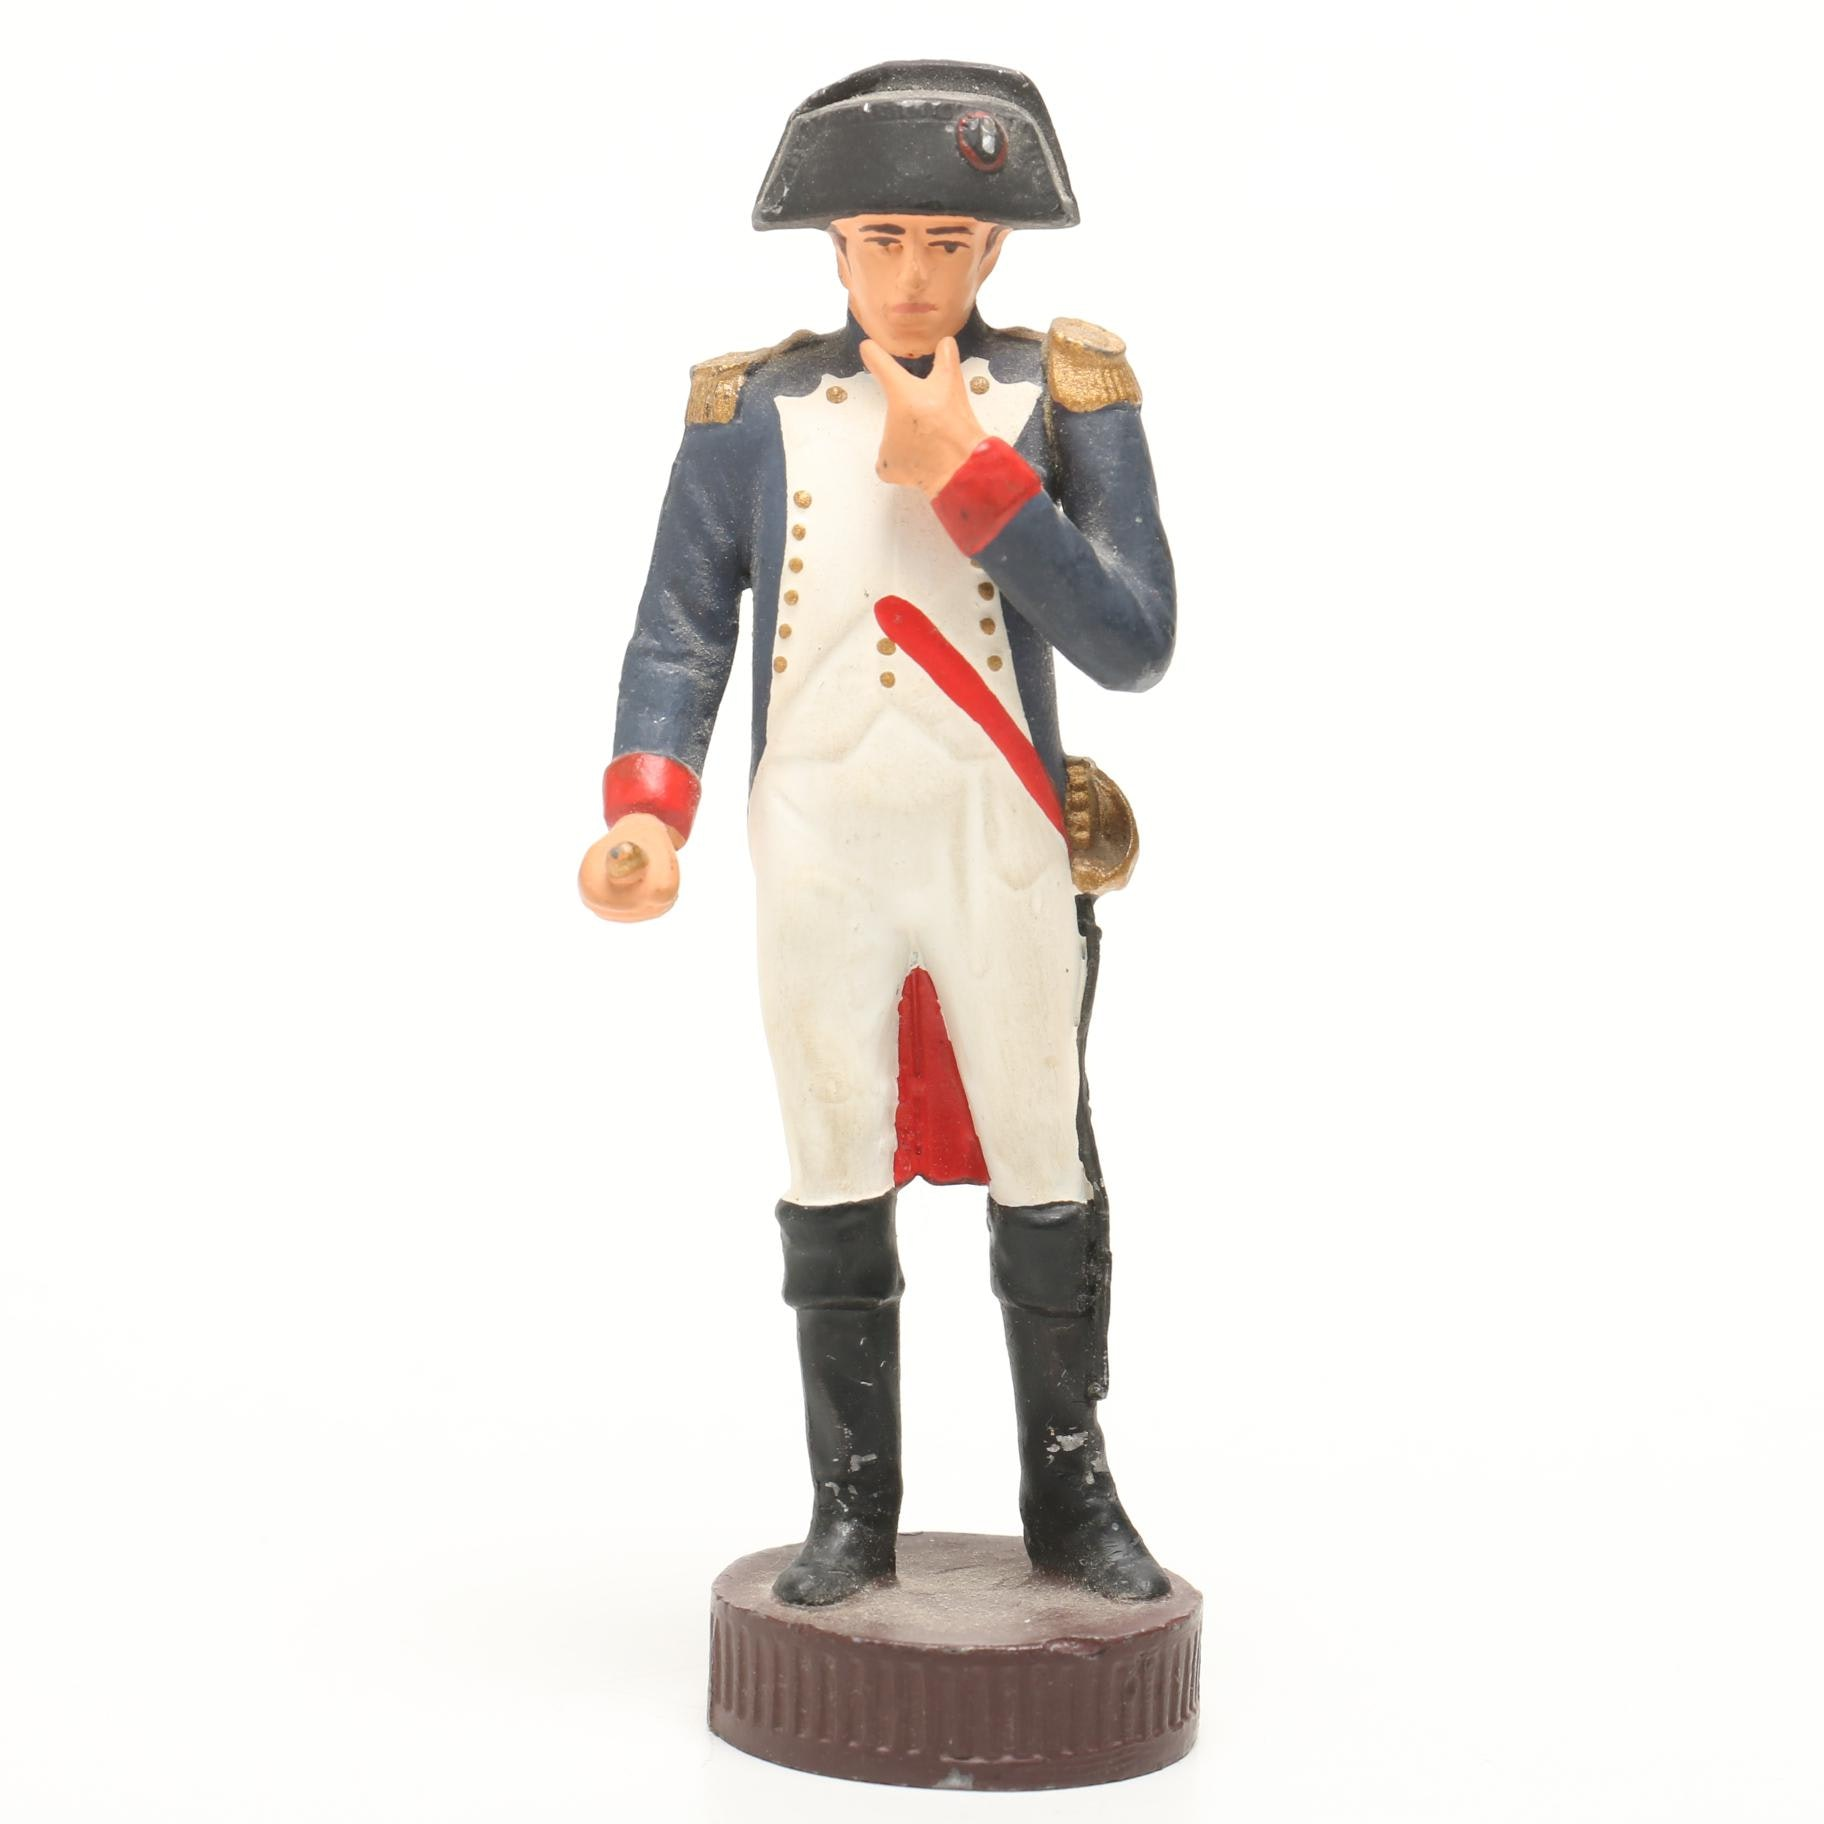 Contemporary United States Naval Cast Iron Soldier